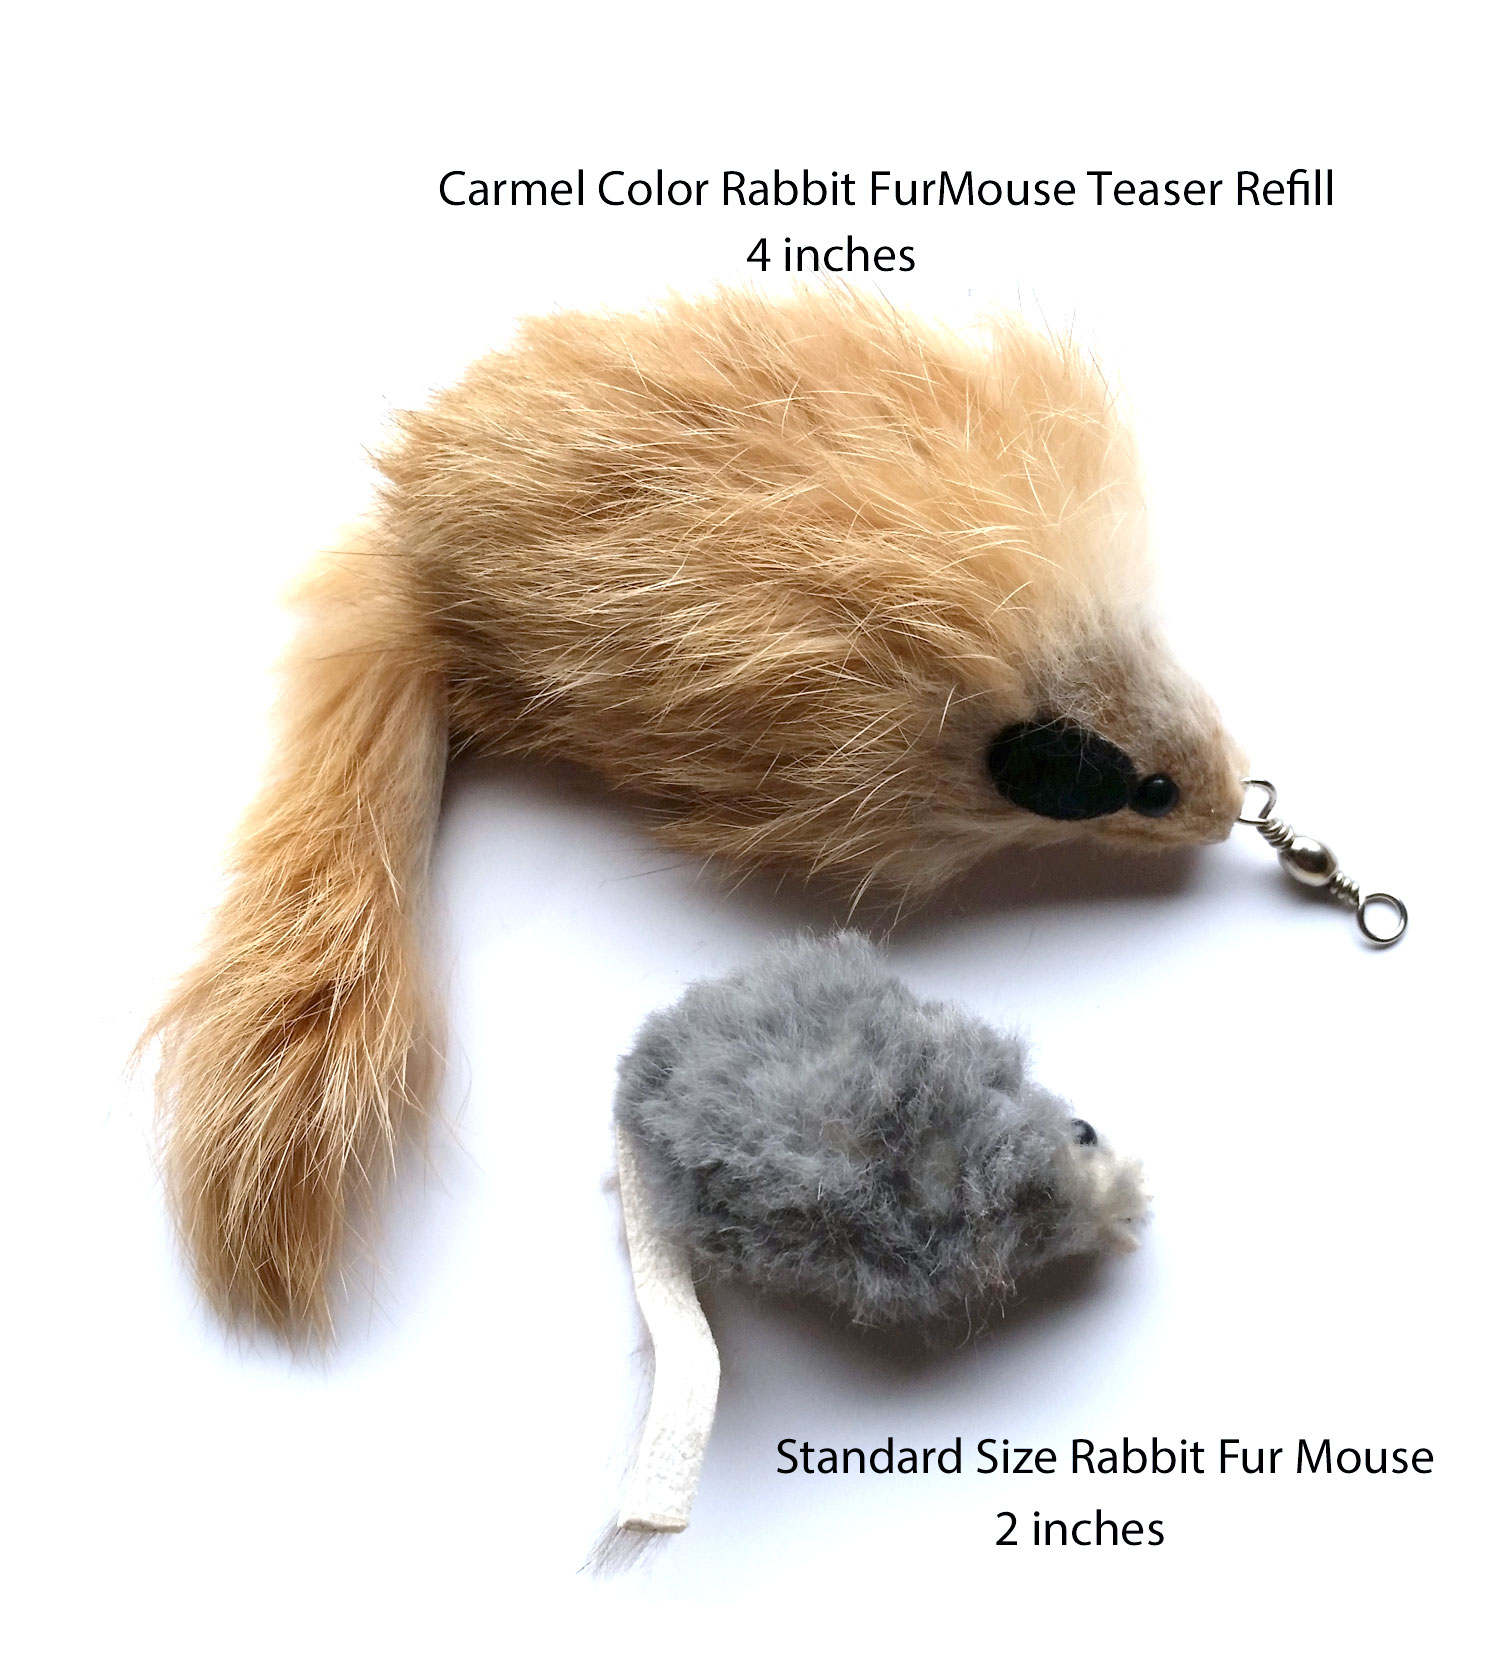 carmel-mouse-comparison.jpg